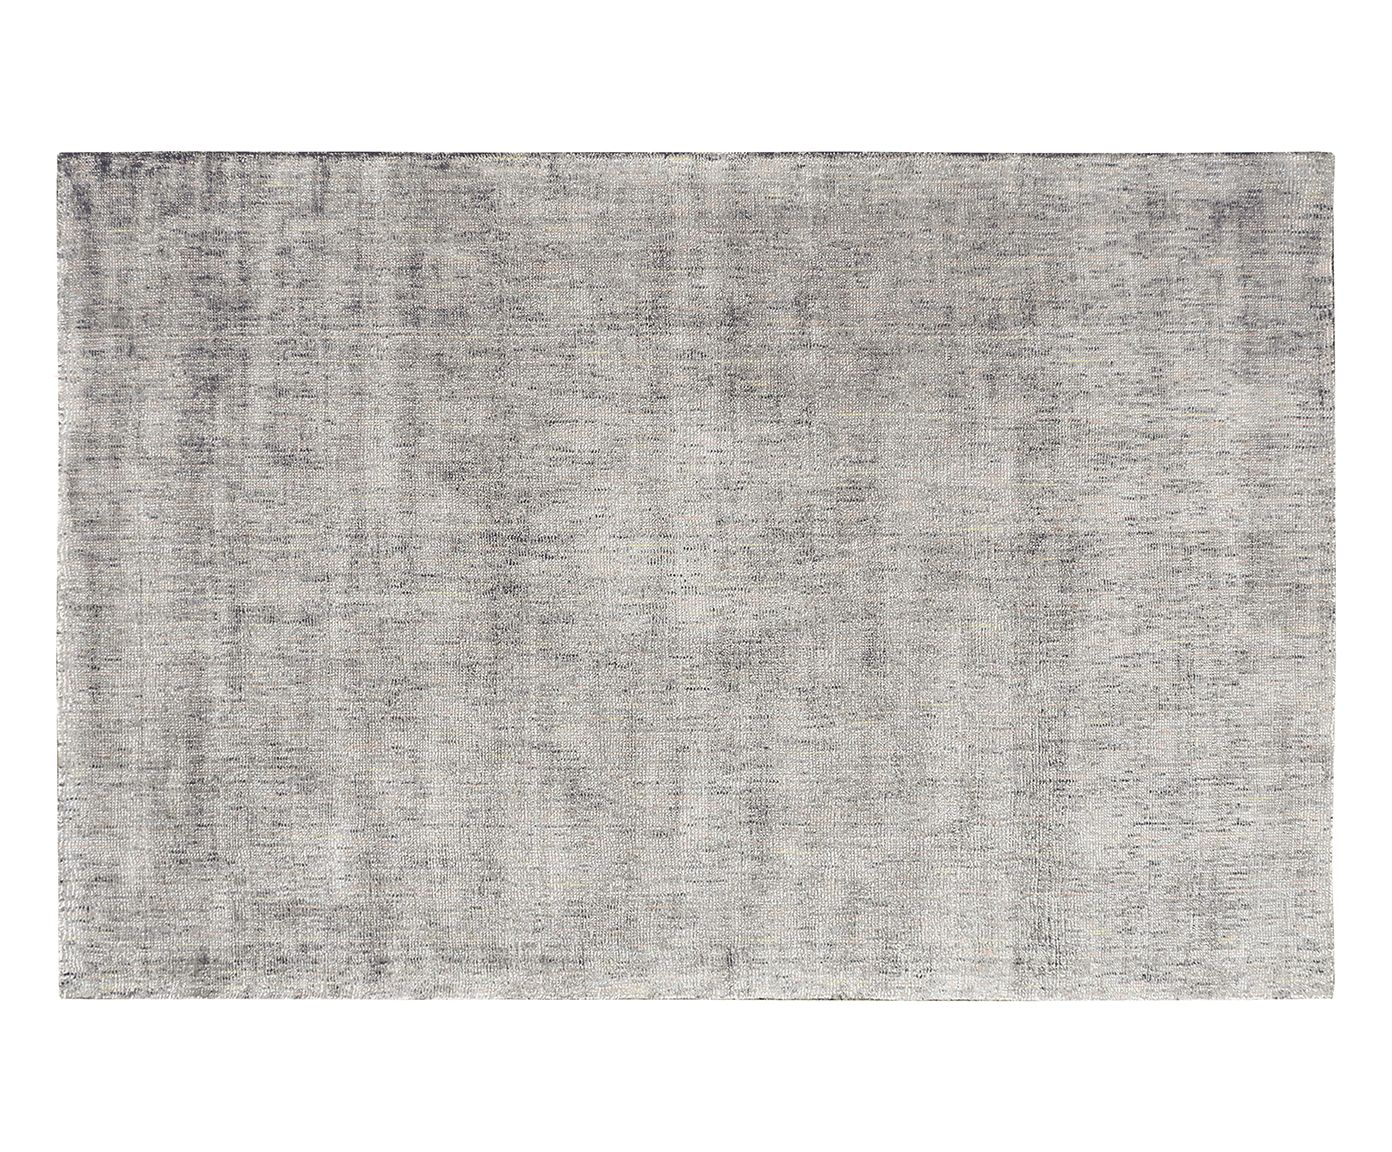 Tapete Indiano Seaburry Giana Cinza - 250X350cm   Westwing.com.br